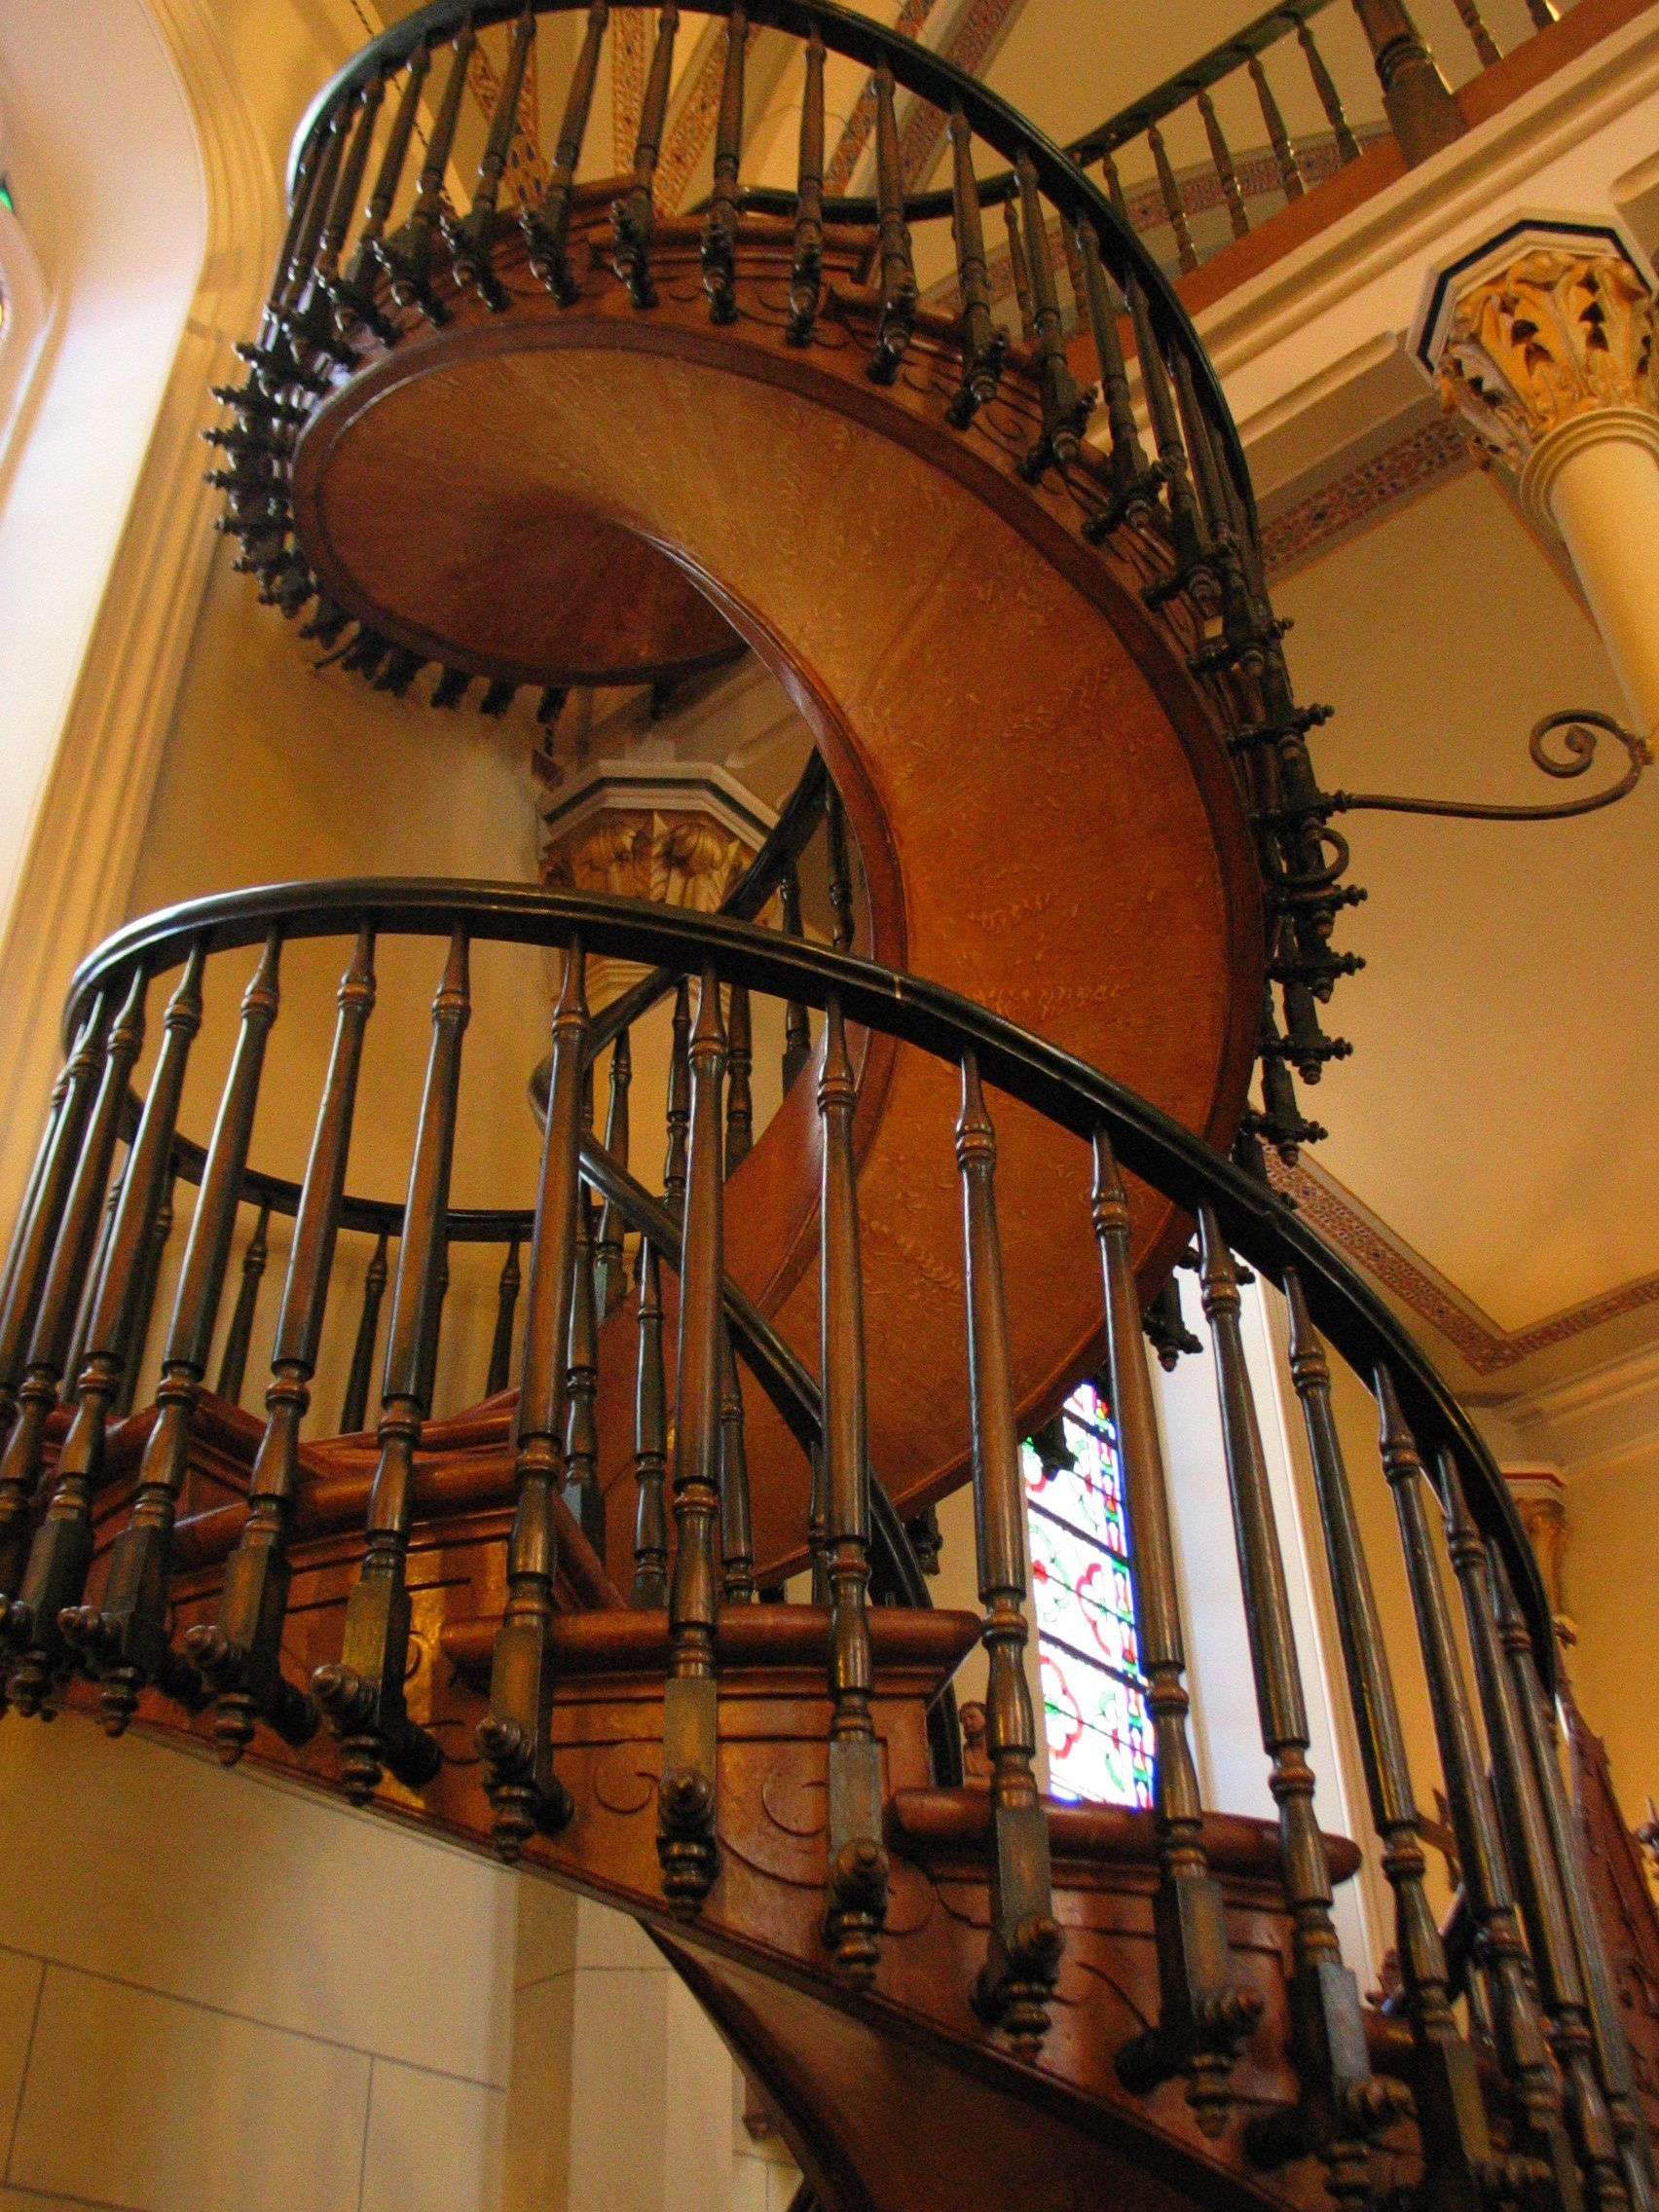 Two Mysteries Surround The Spiral Staircase In The Loretto Chapel: The  Identity Of Its Builder And The Physics Of Its Construction.